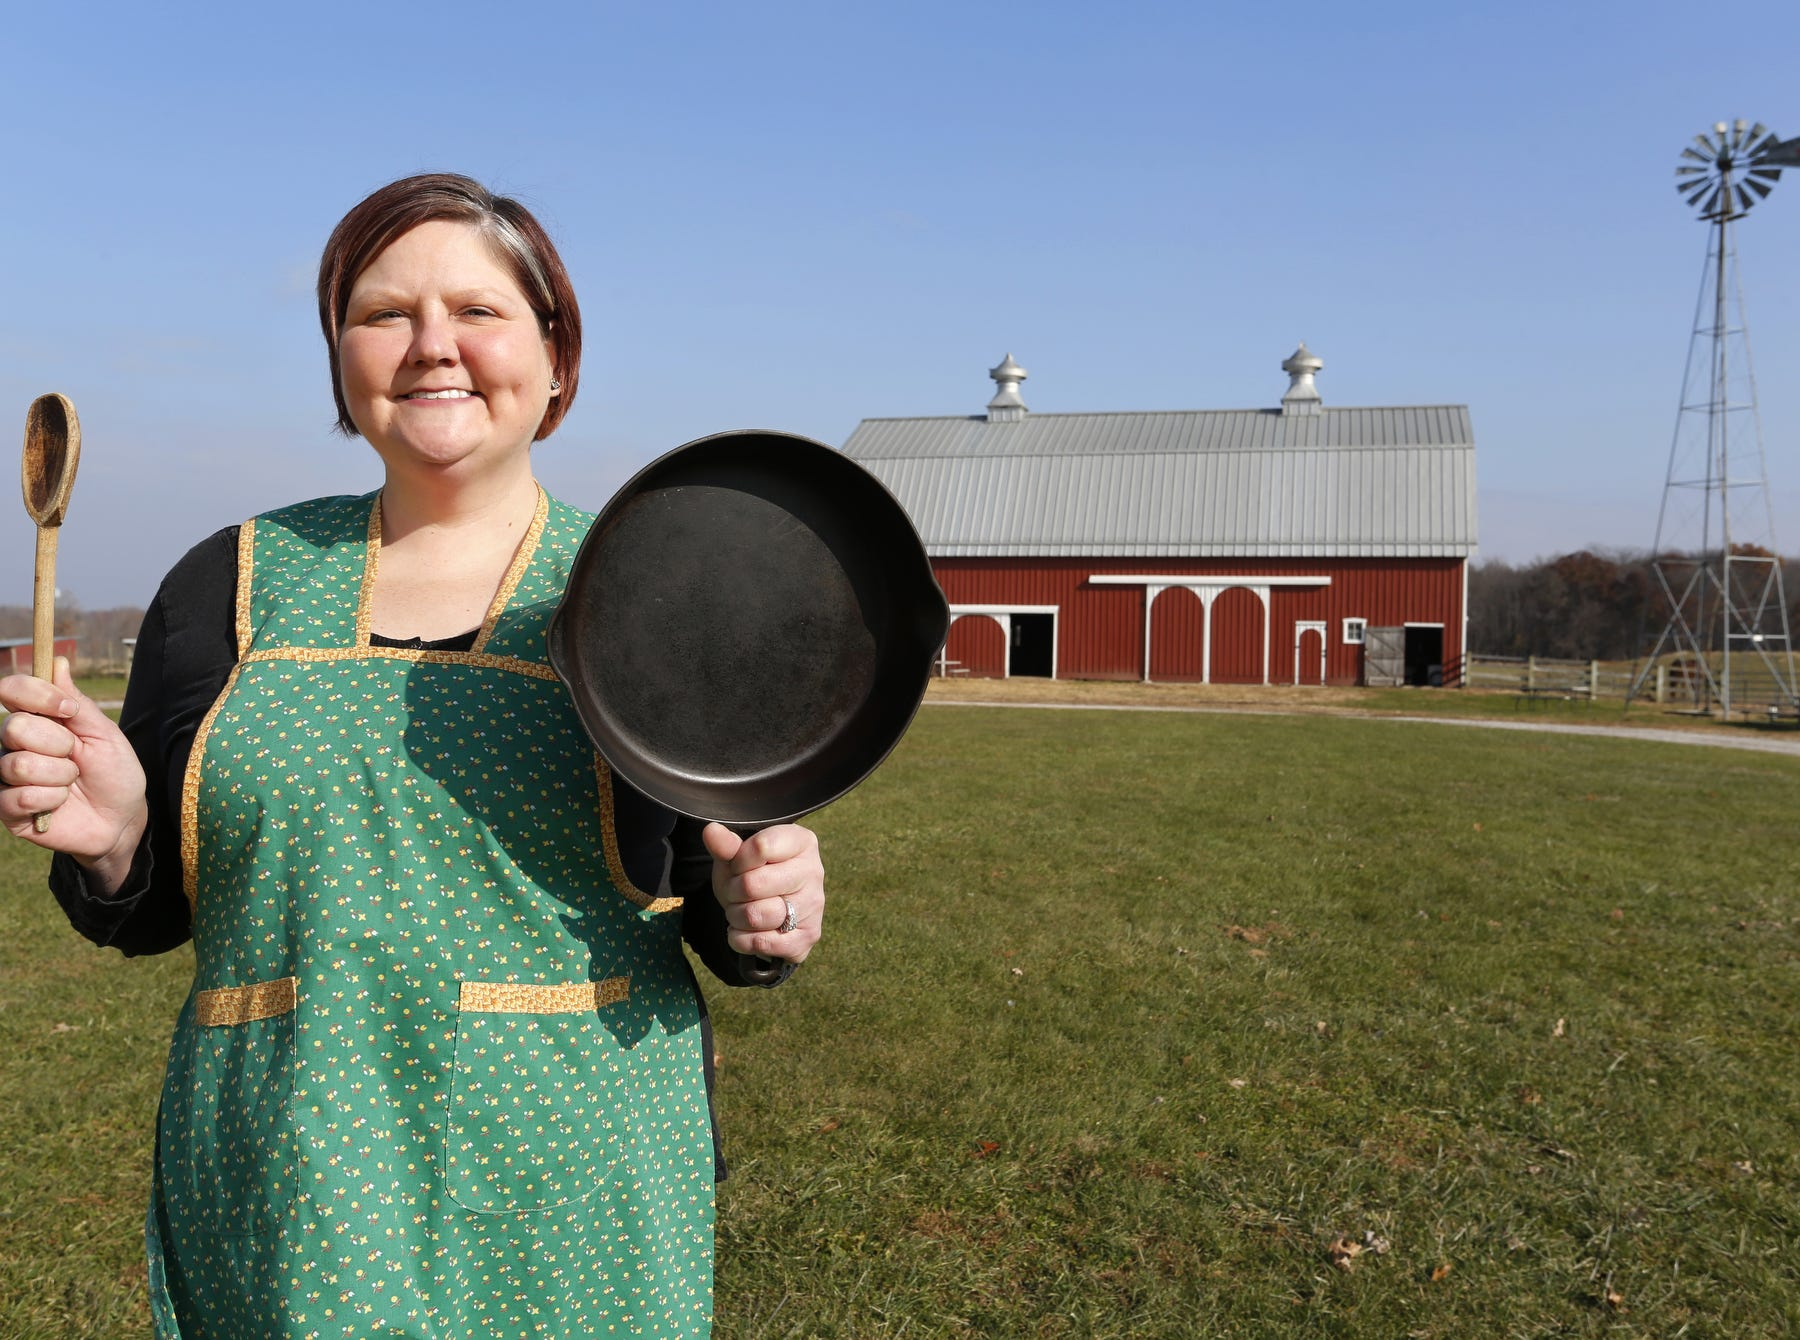 Lauren Reed, events and education coordinator for the Farm at Prophetstown Town, Wednesday, November 21, 2018, at the farm near Battle Ground.